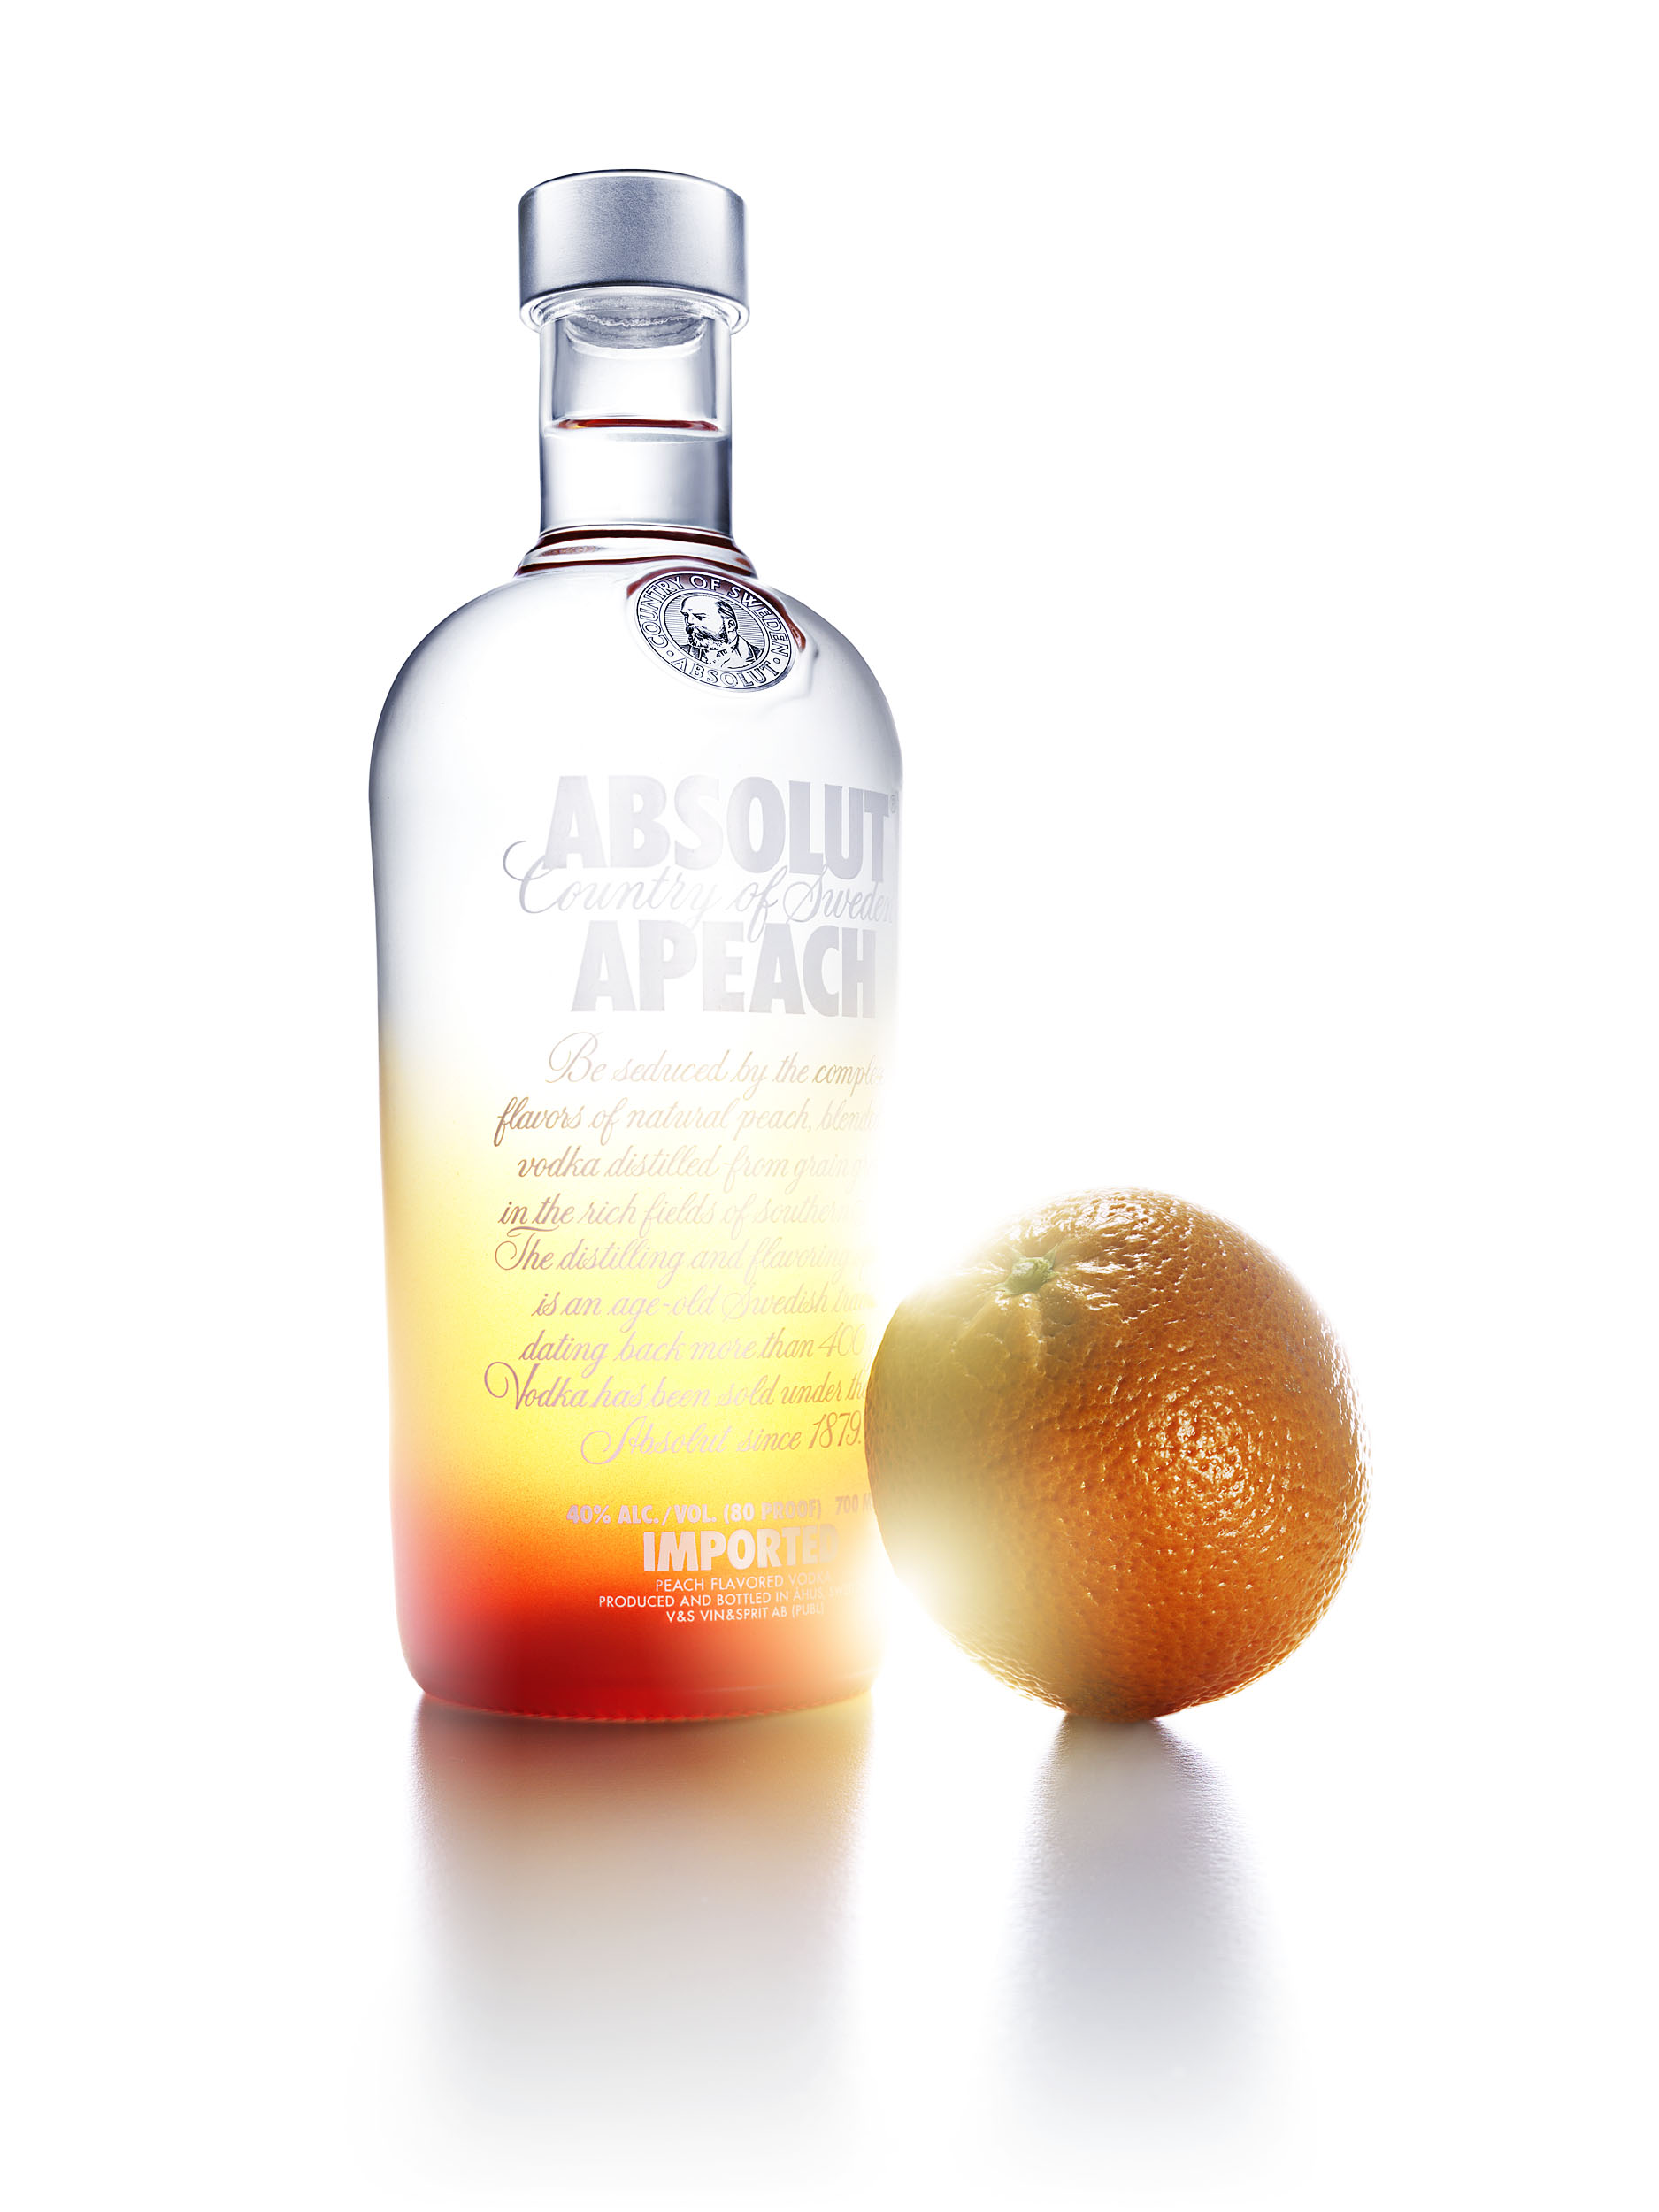 jensmortensen-absolut-vodka-8db79664